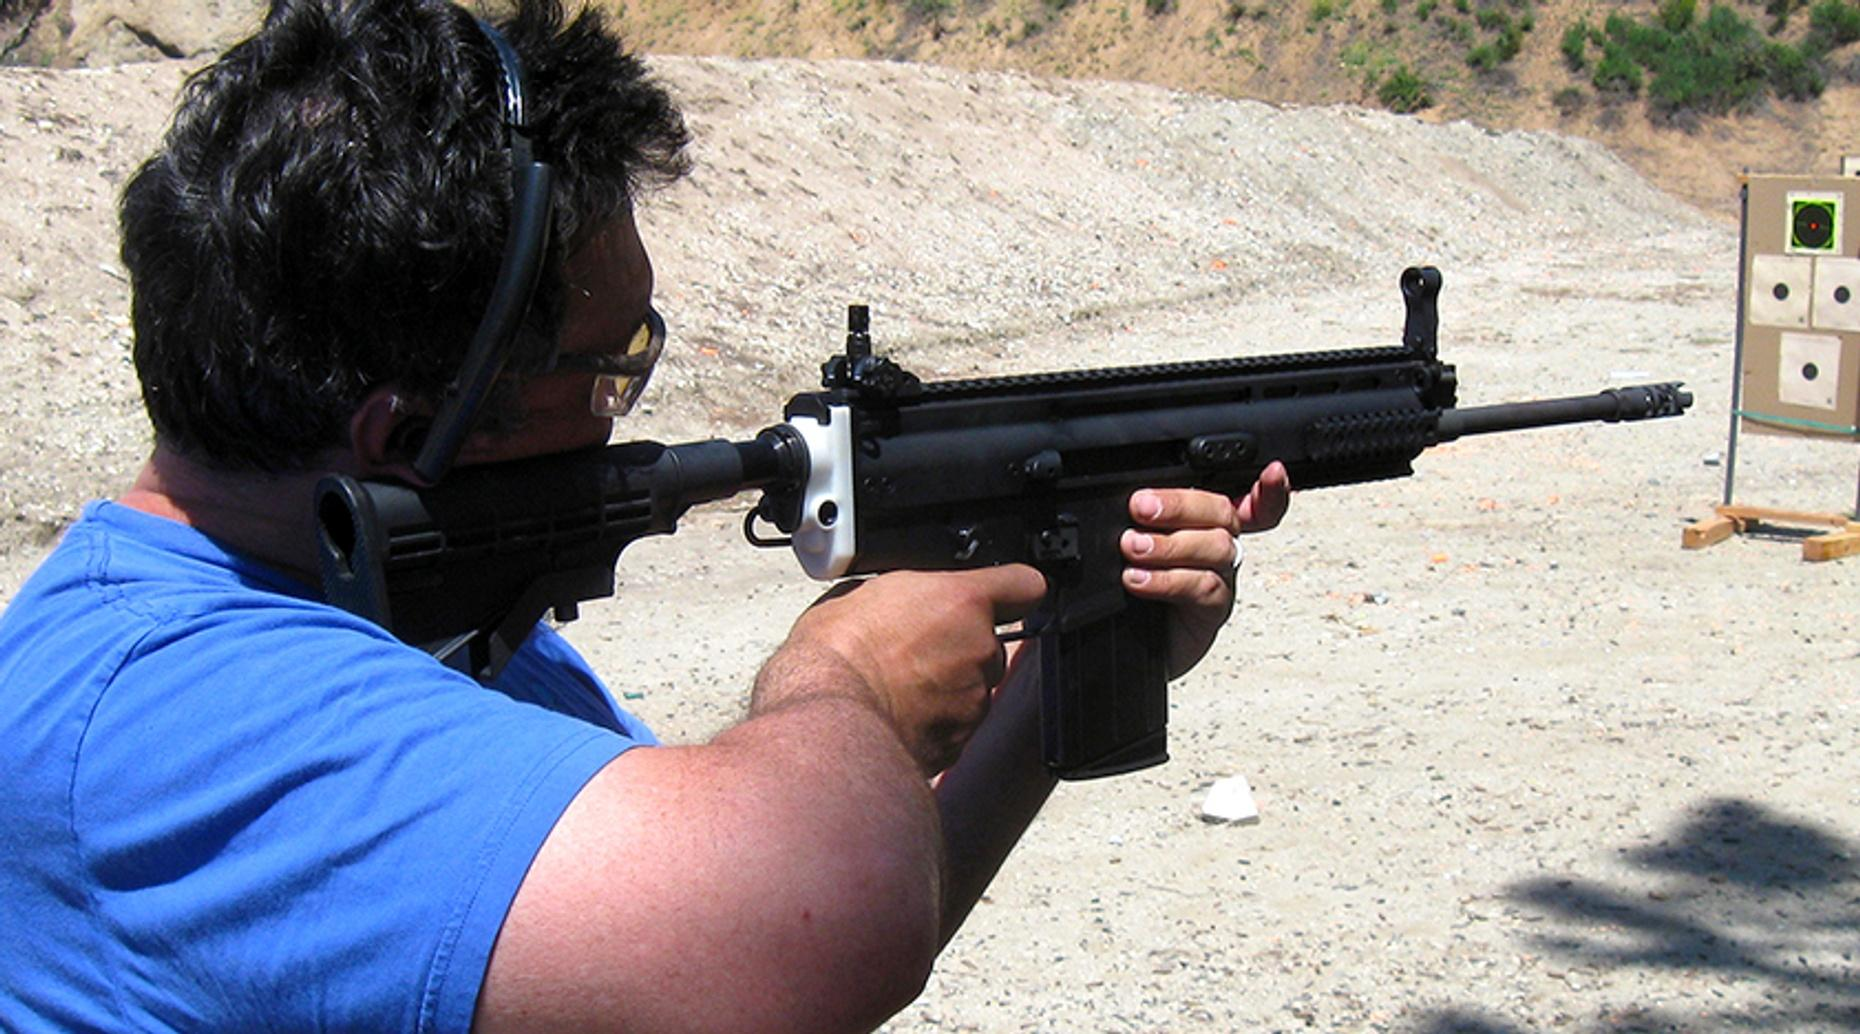 Firearm Safety and Technique Class in San Mateo